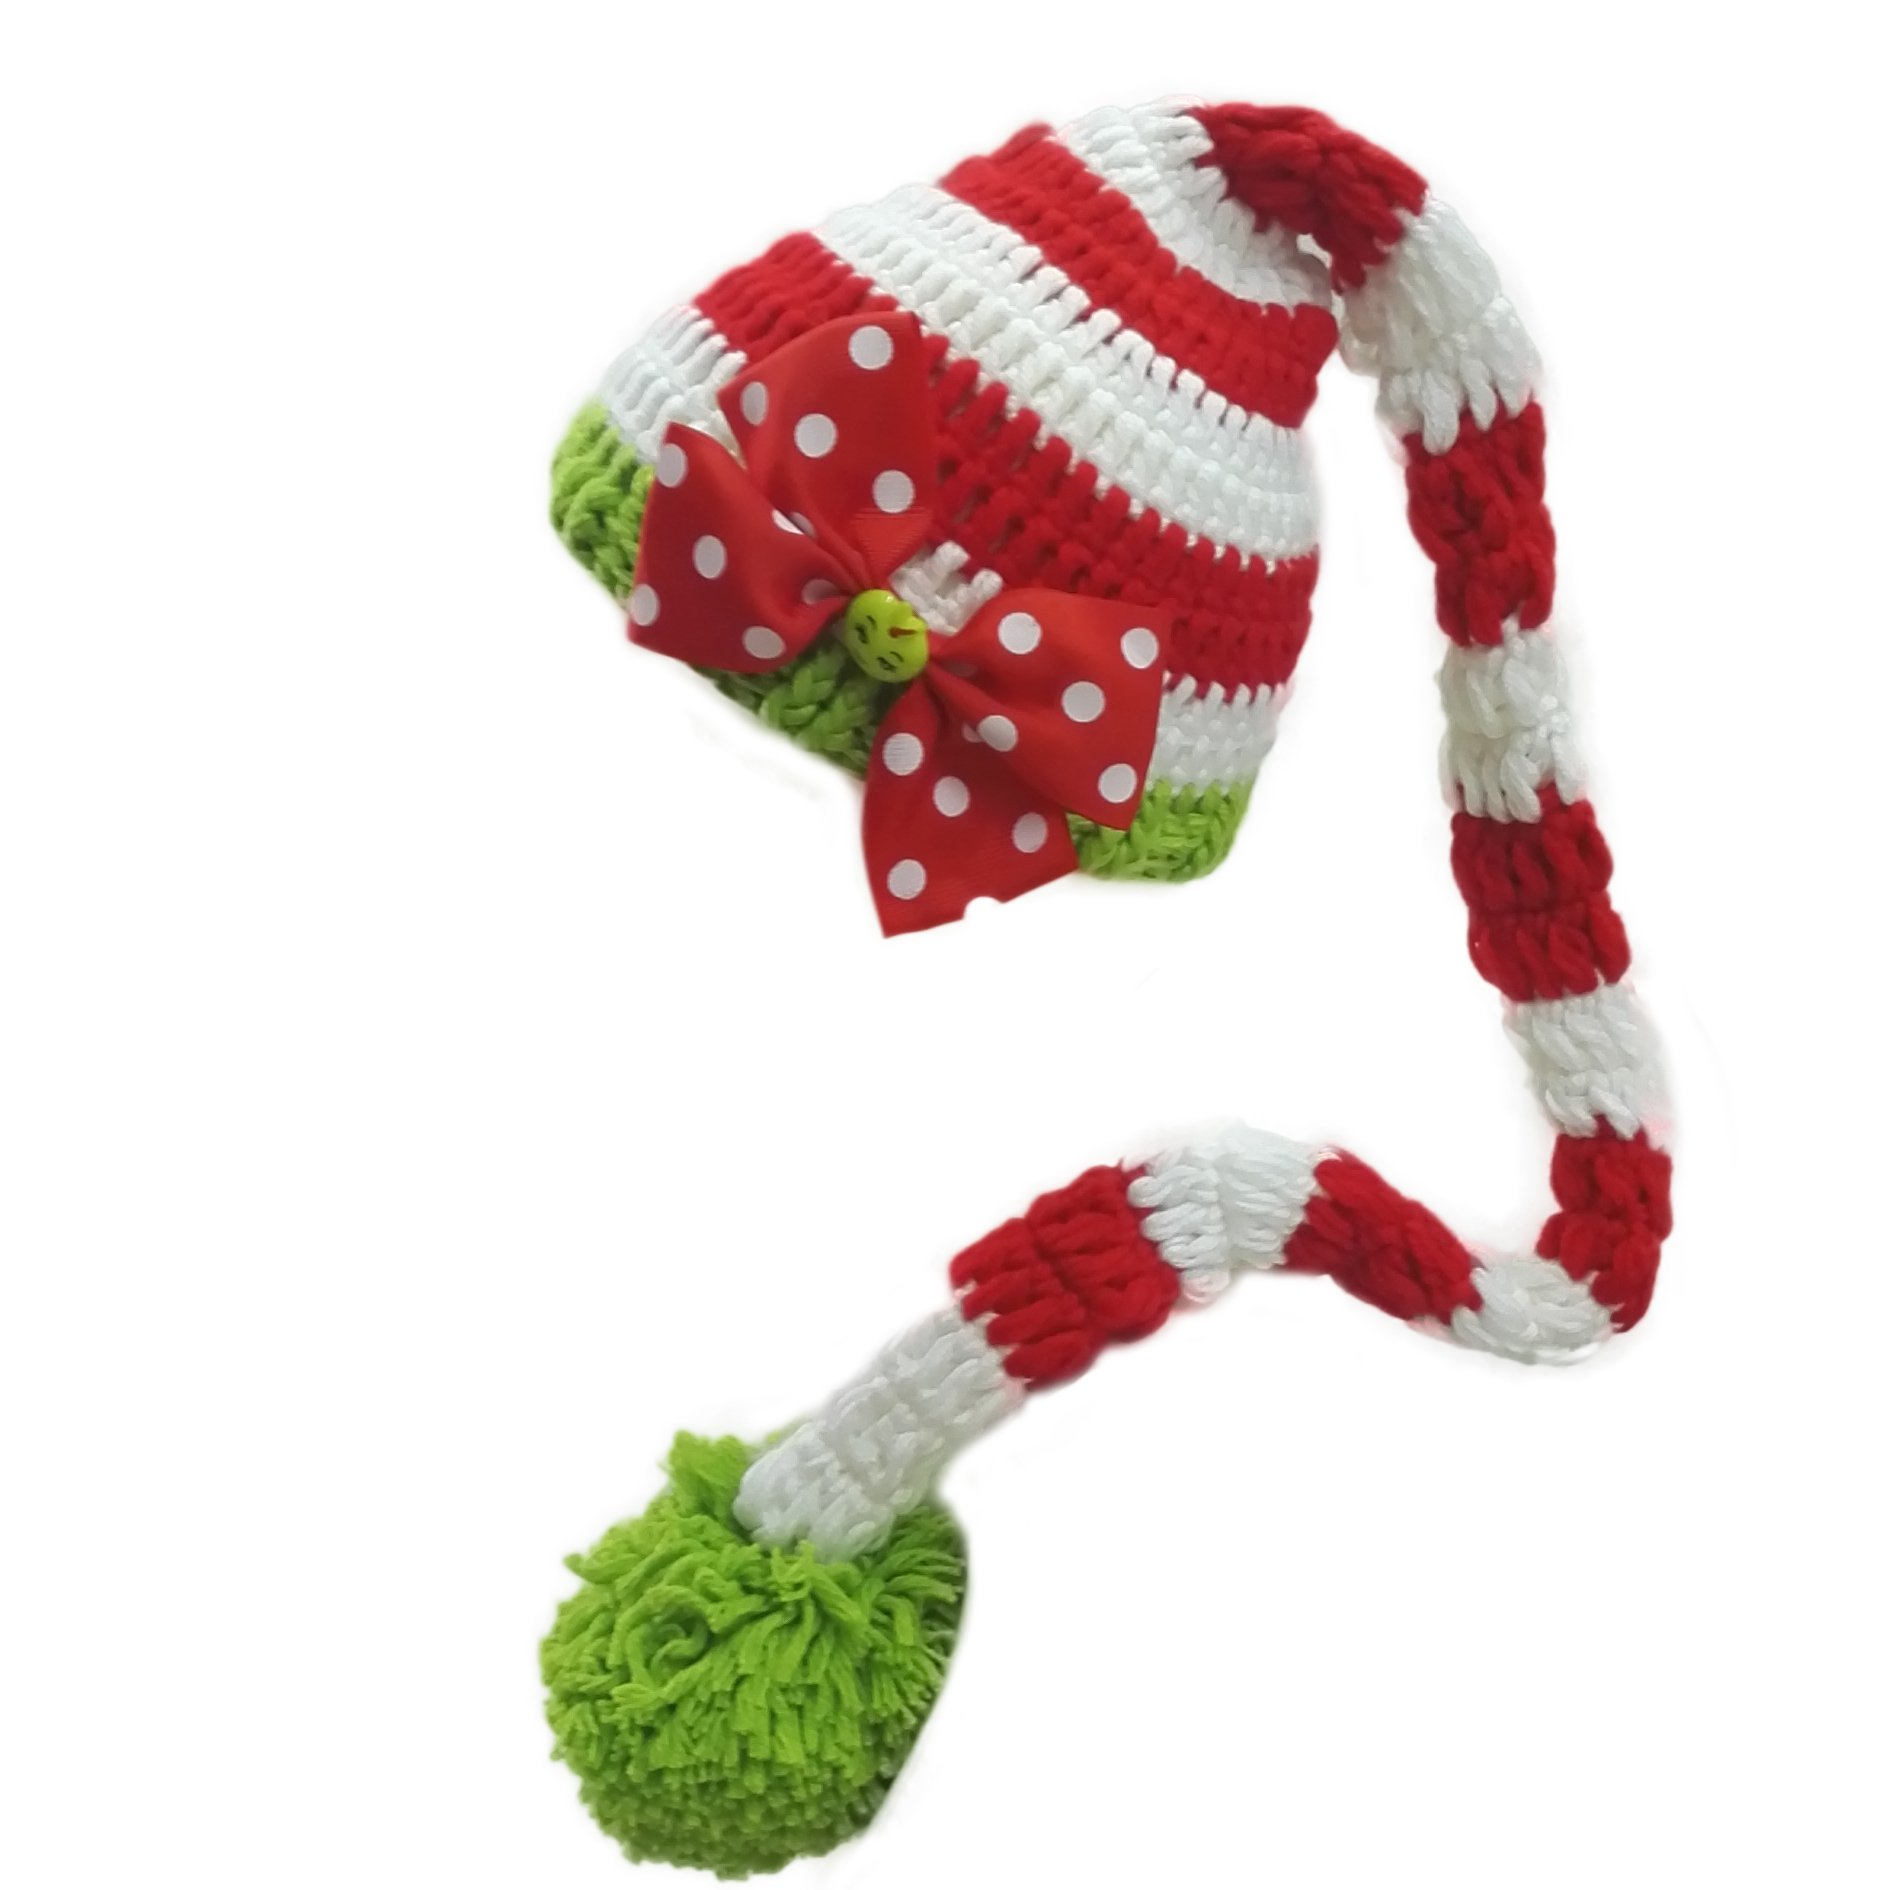 Rhumen Baby Photography Prop Christmas Baby Newborn Handmade Clothes by Rhumen (Image #1)